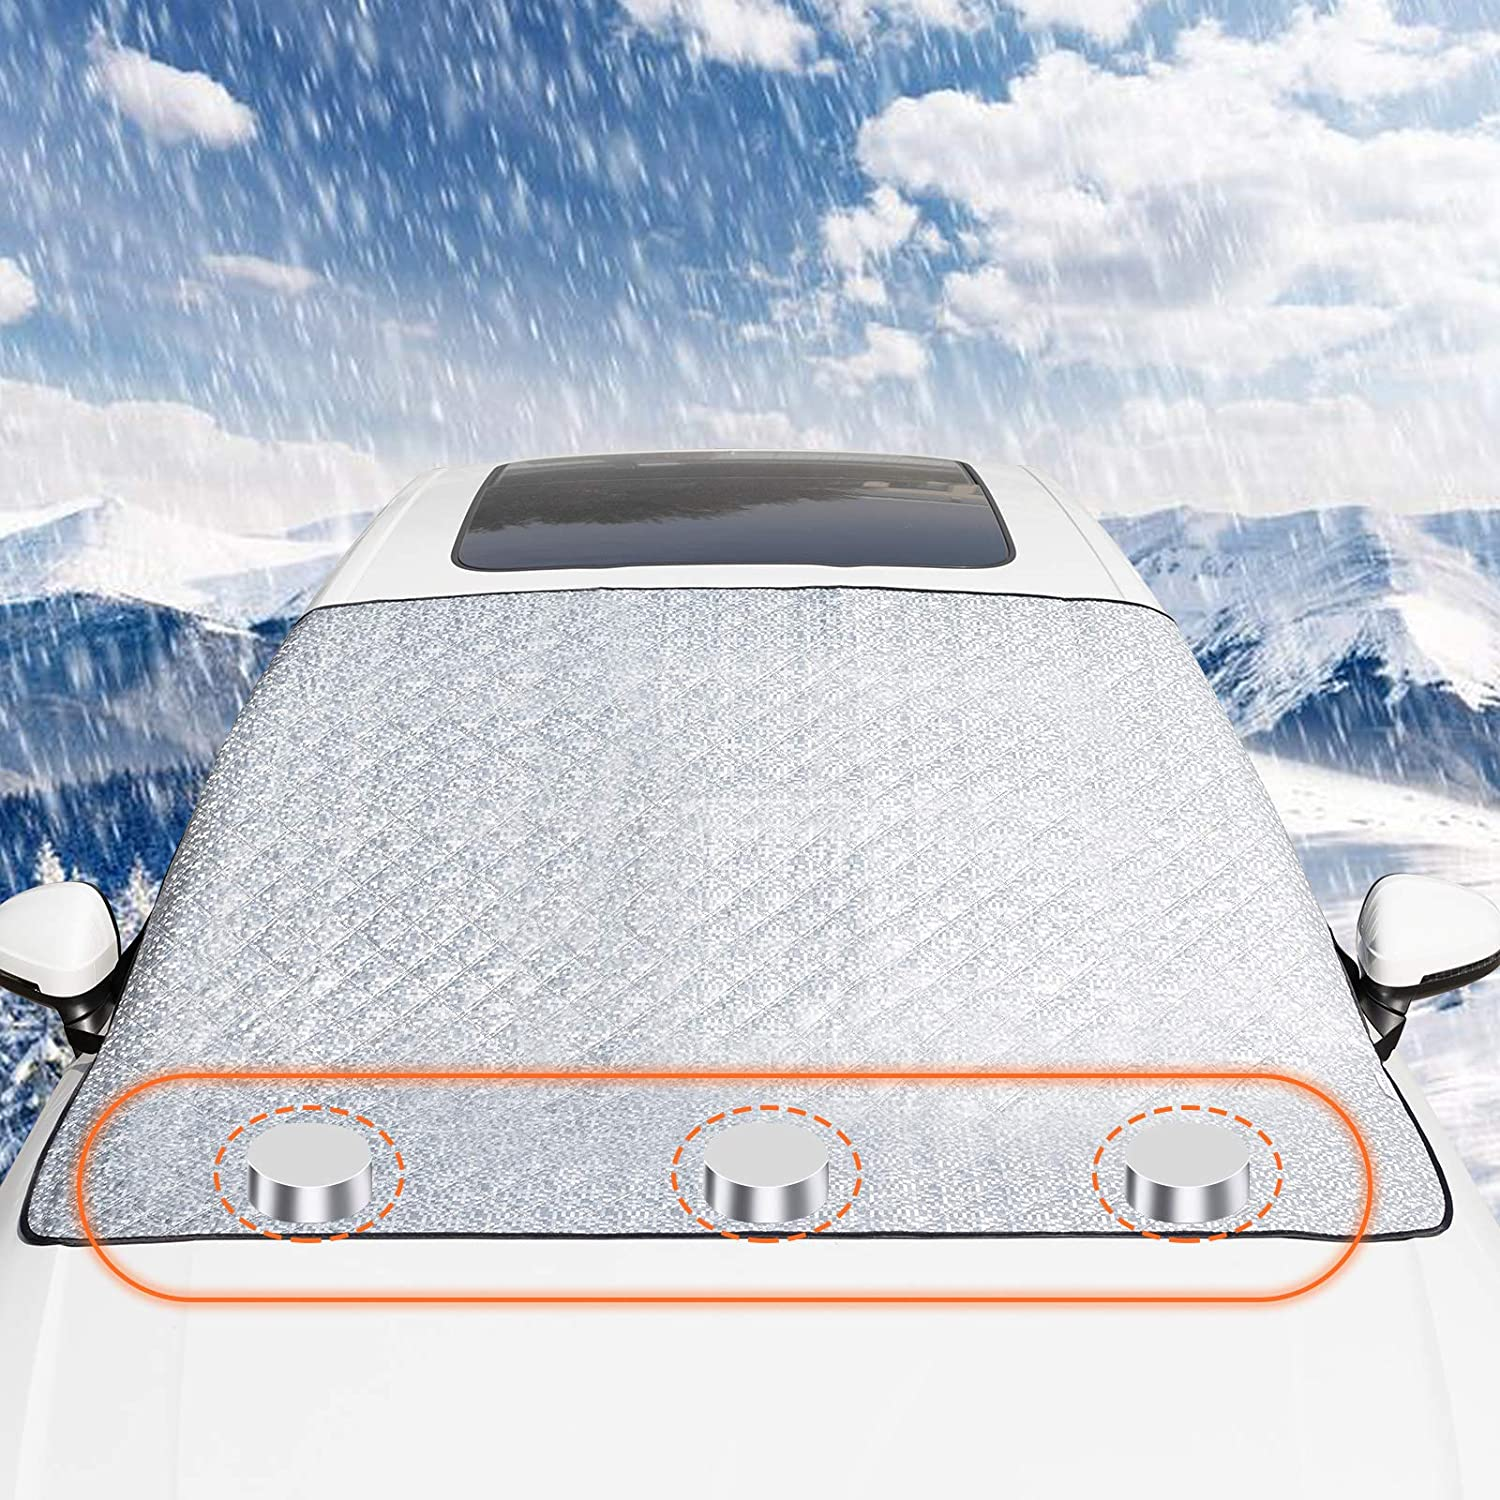 Large Windshield Ice and Snow Cover Fits Most Cars and SUV VOHQPEI Snow Windshield Cover for Car with 4 Layers Protection